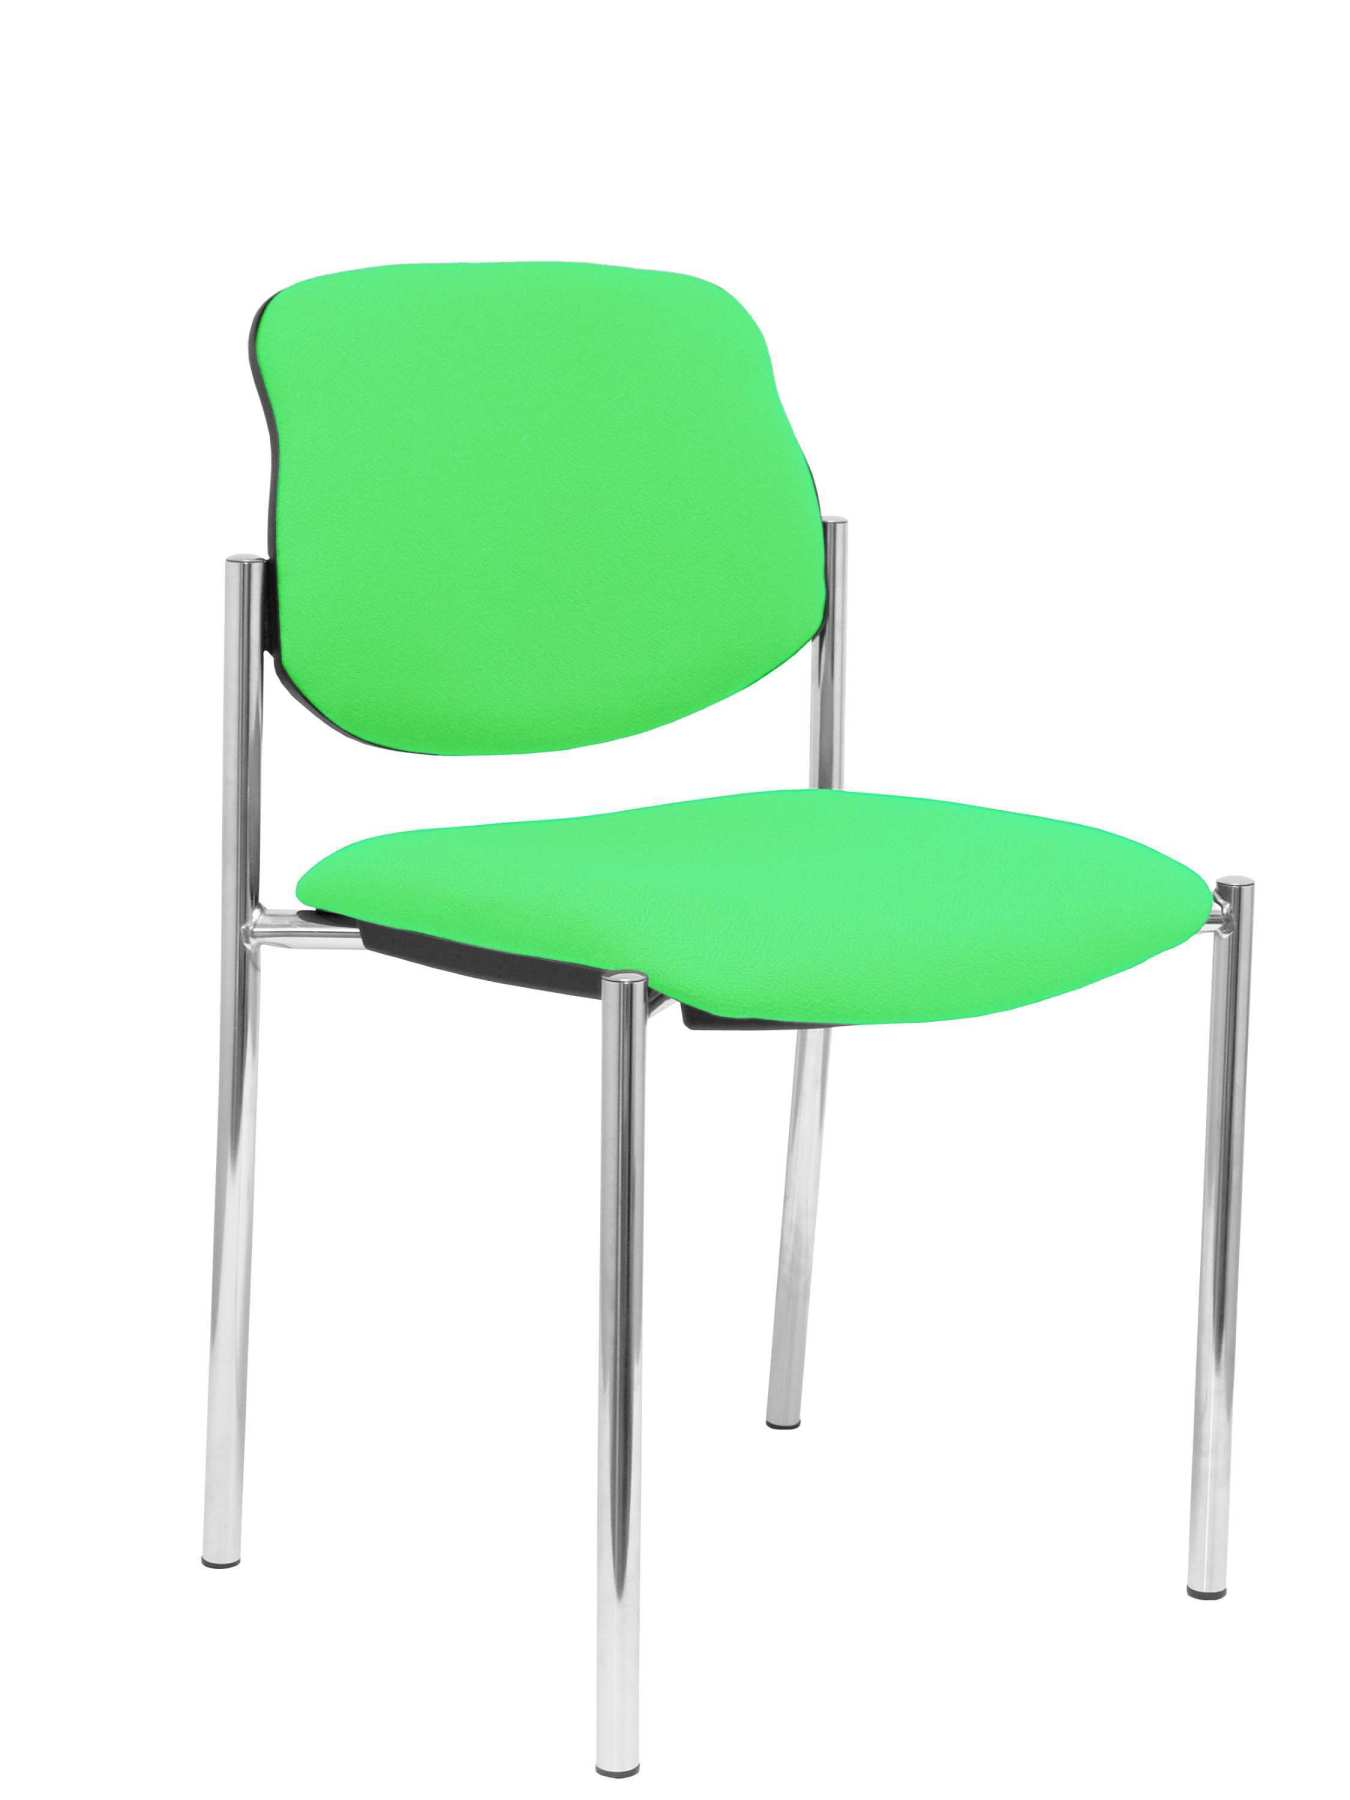 Confident Chair 4-leg And Estructrua Chrome Seat And Back Upholstered In Fabric BALI Pistachio Color PIQUERAS And